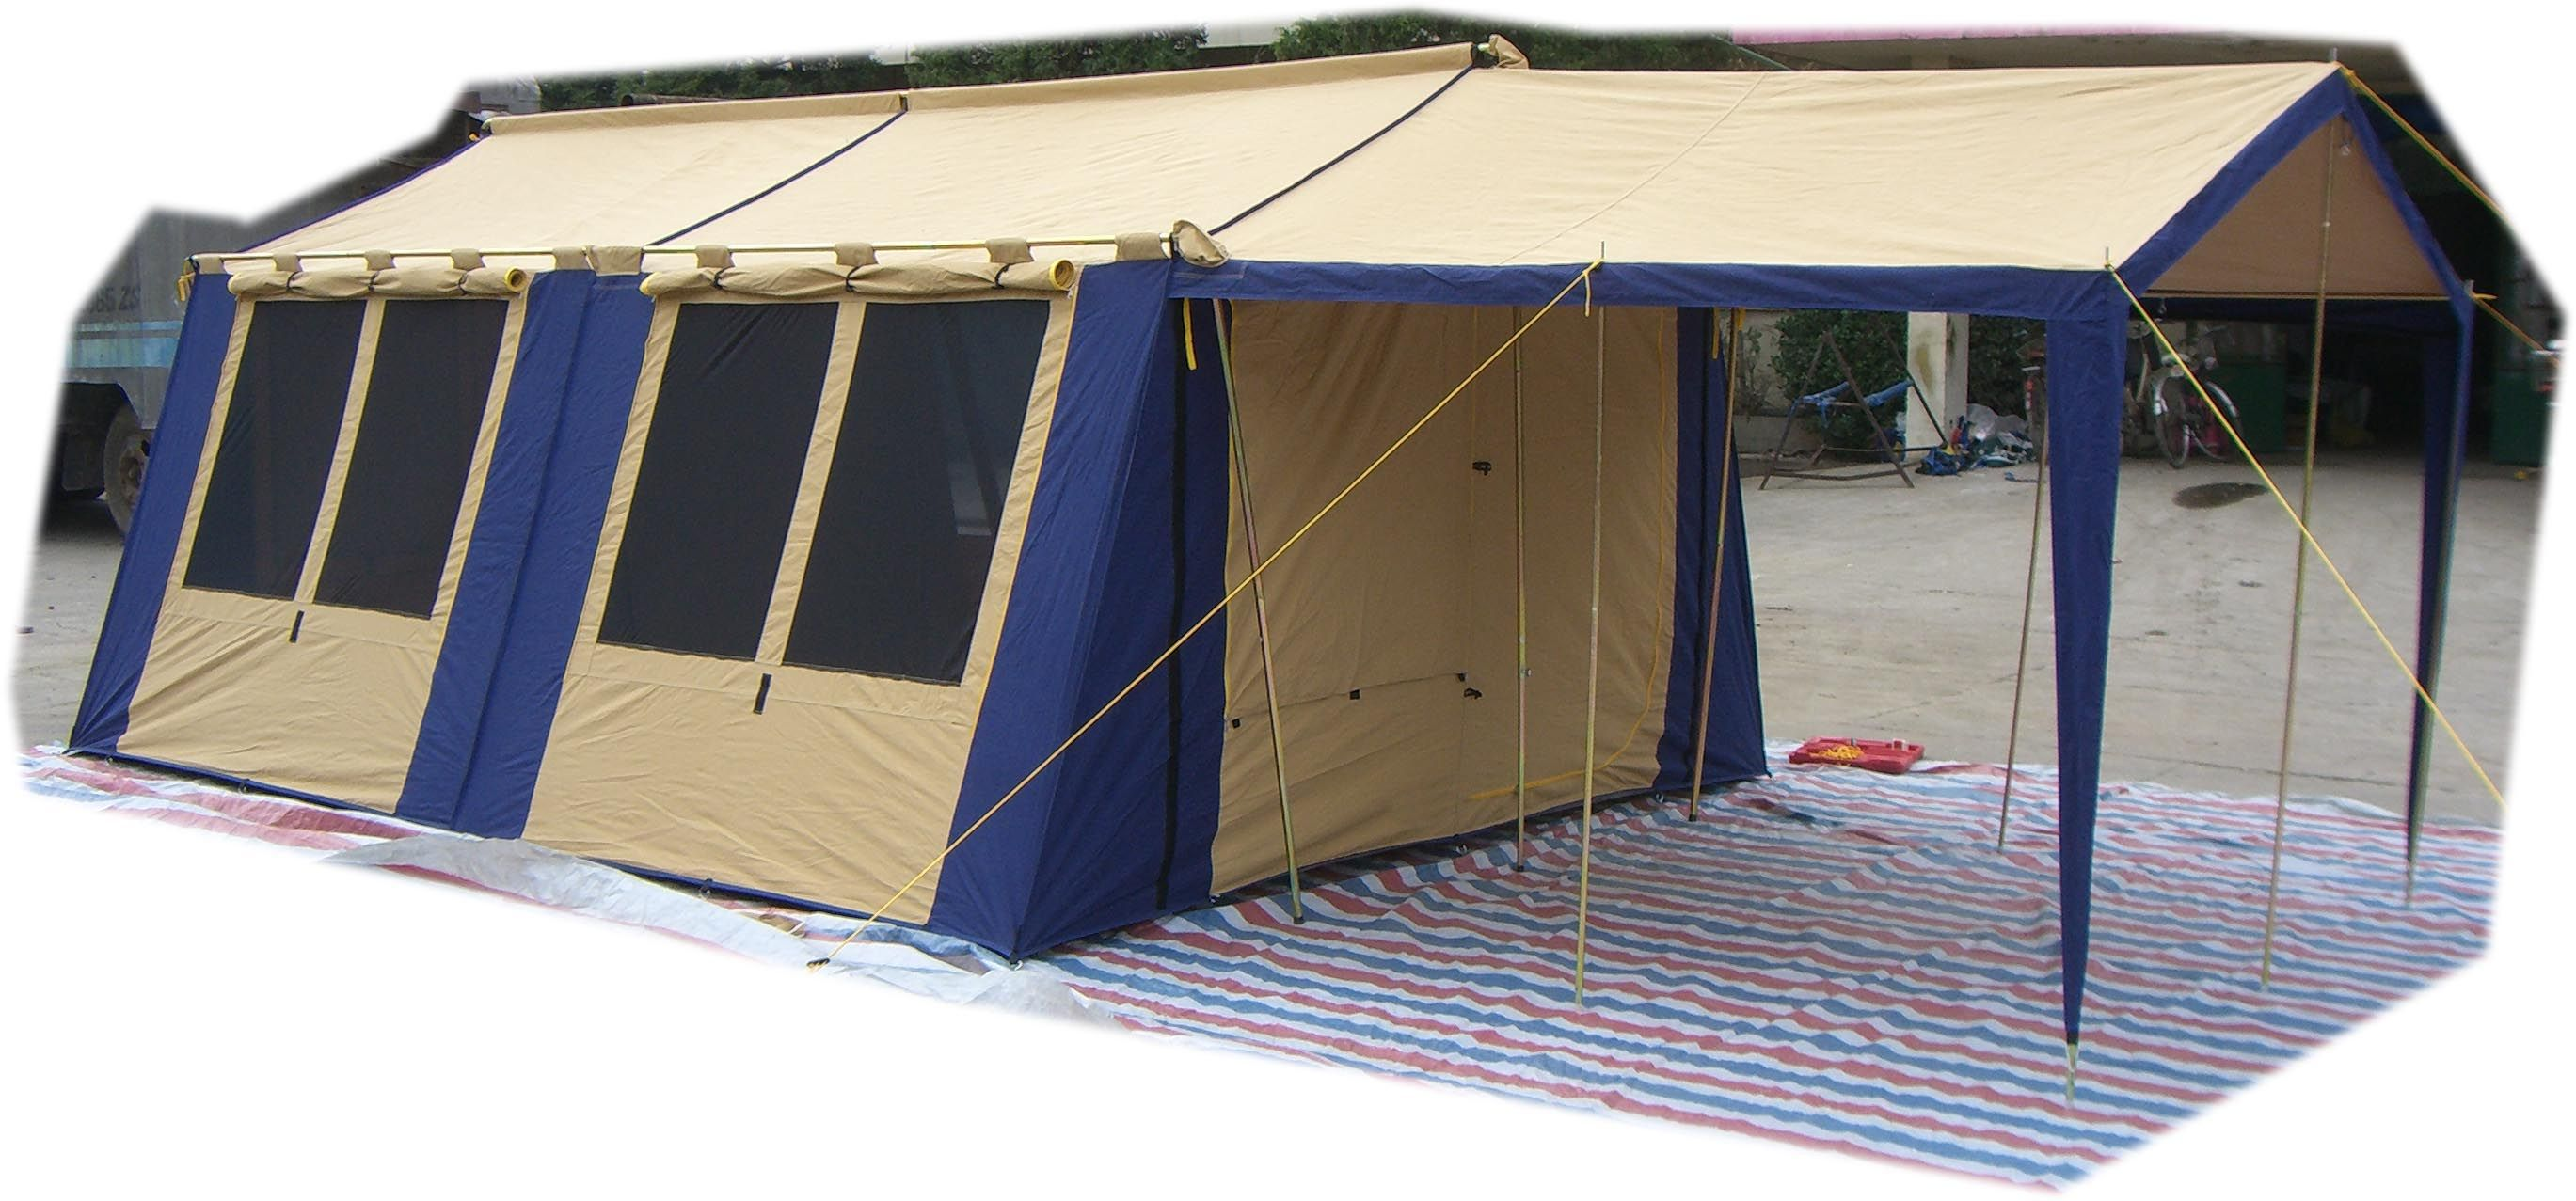 Incroyable Search Results Large Camping Tent   Best Car Wallpaper